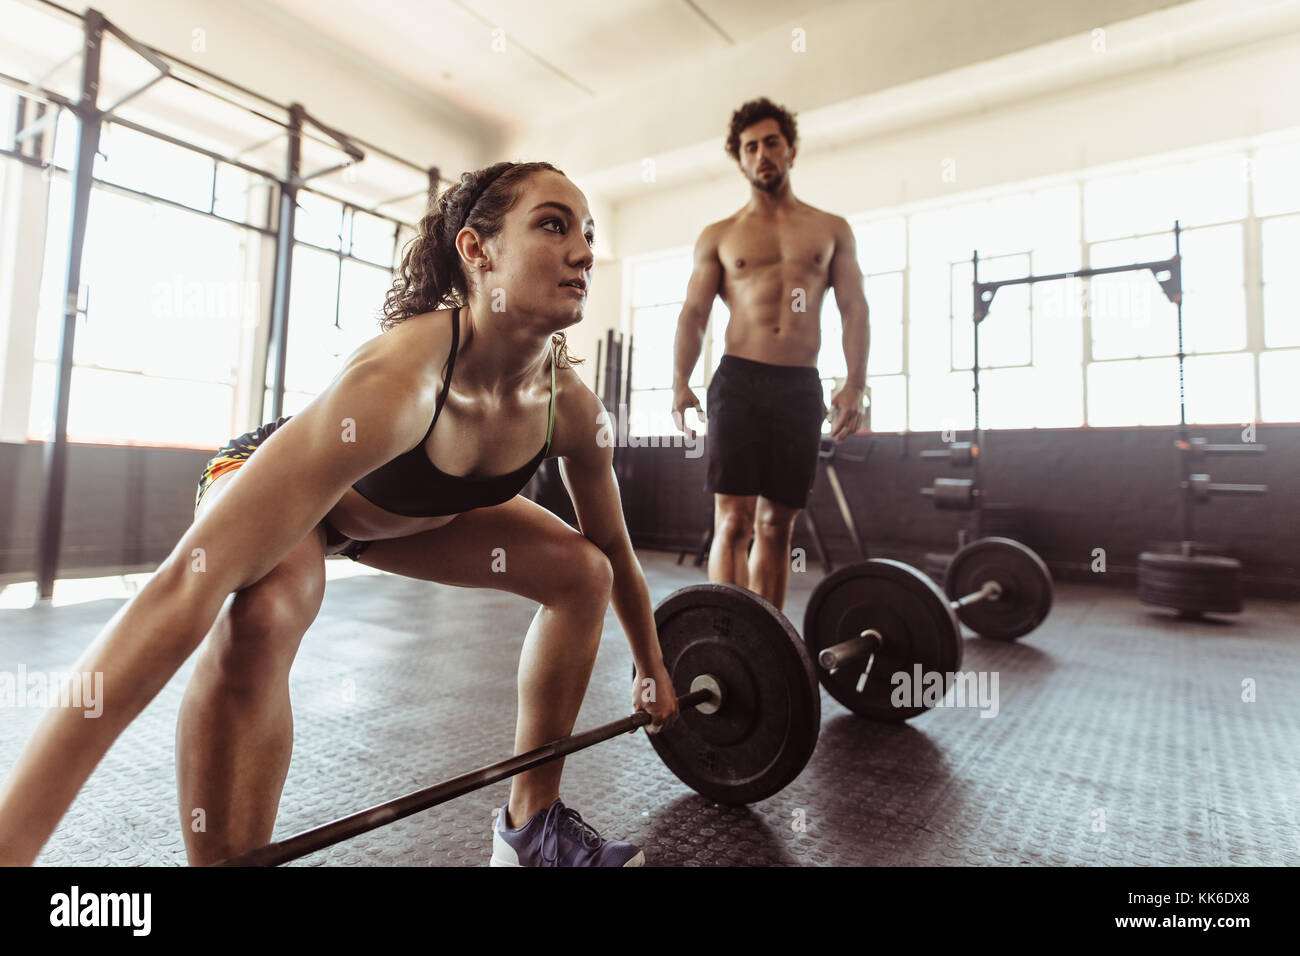 cf6eb2a769a9 Fit young woman exercising with barbell and man standing in background.  Female athlete lifting heavy weights at cross training gym.